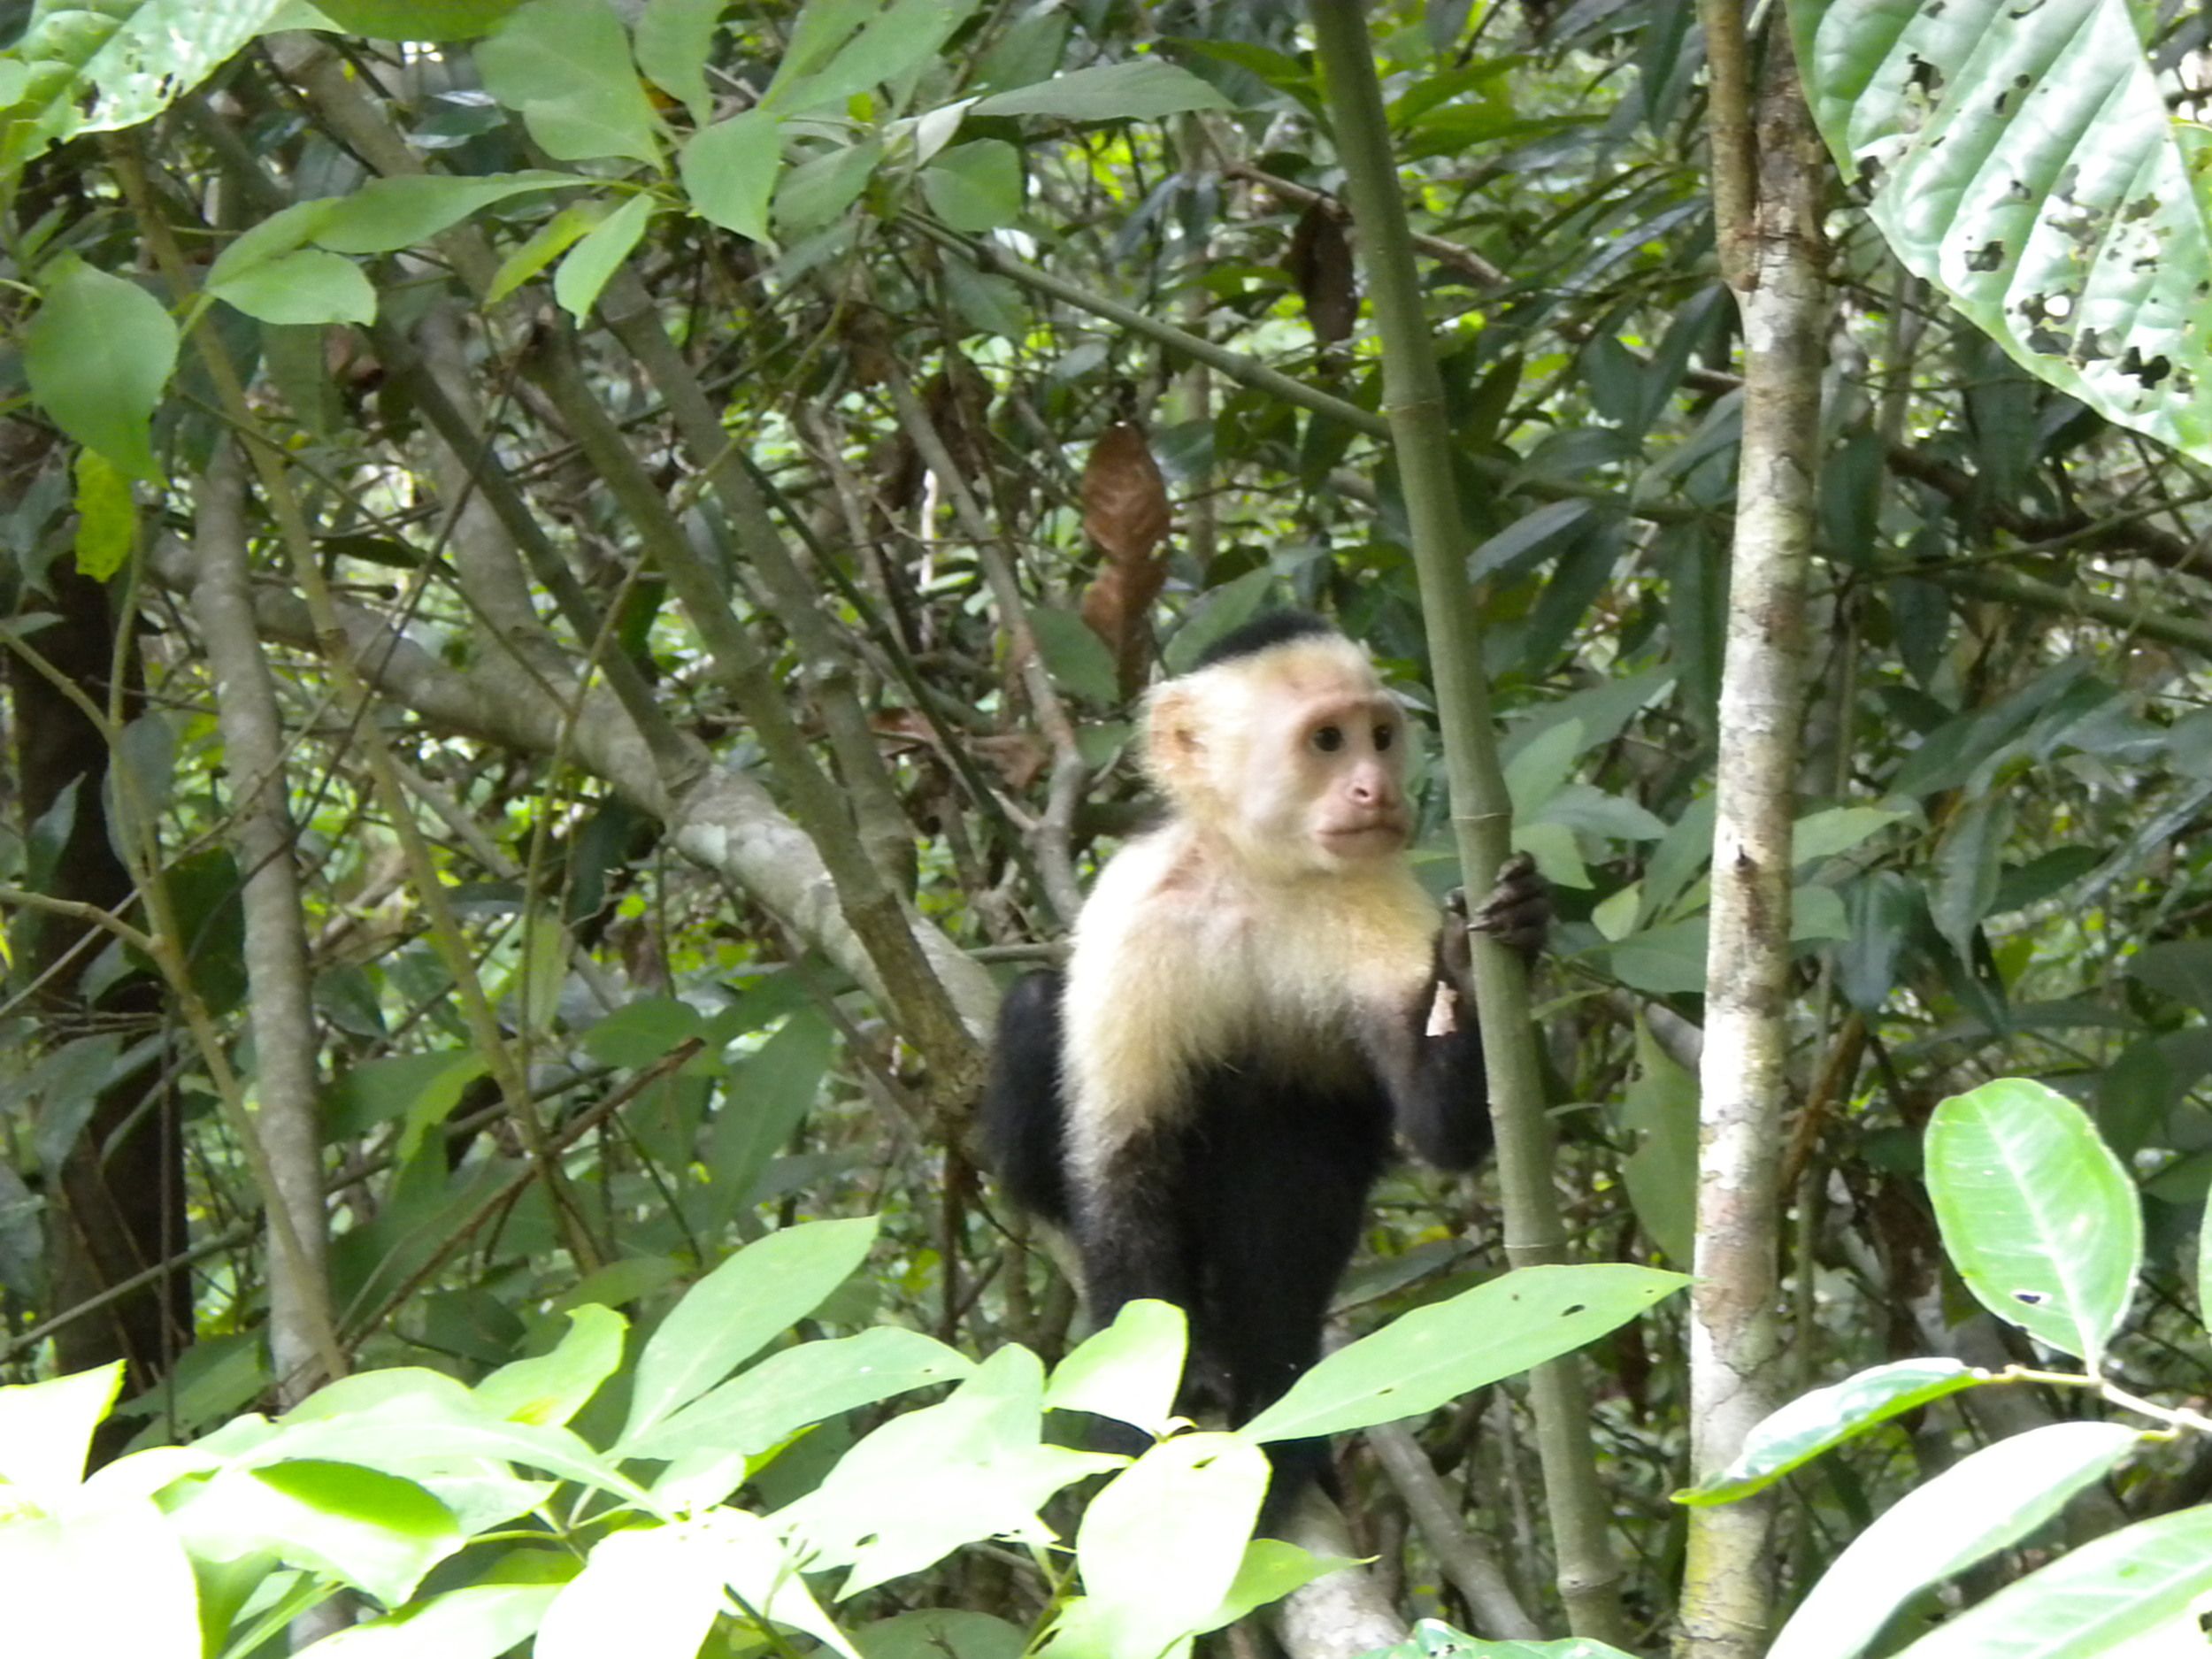 Say hello to my little friend, Parque Nacional Manuel Antonio, Costa Rica